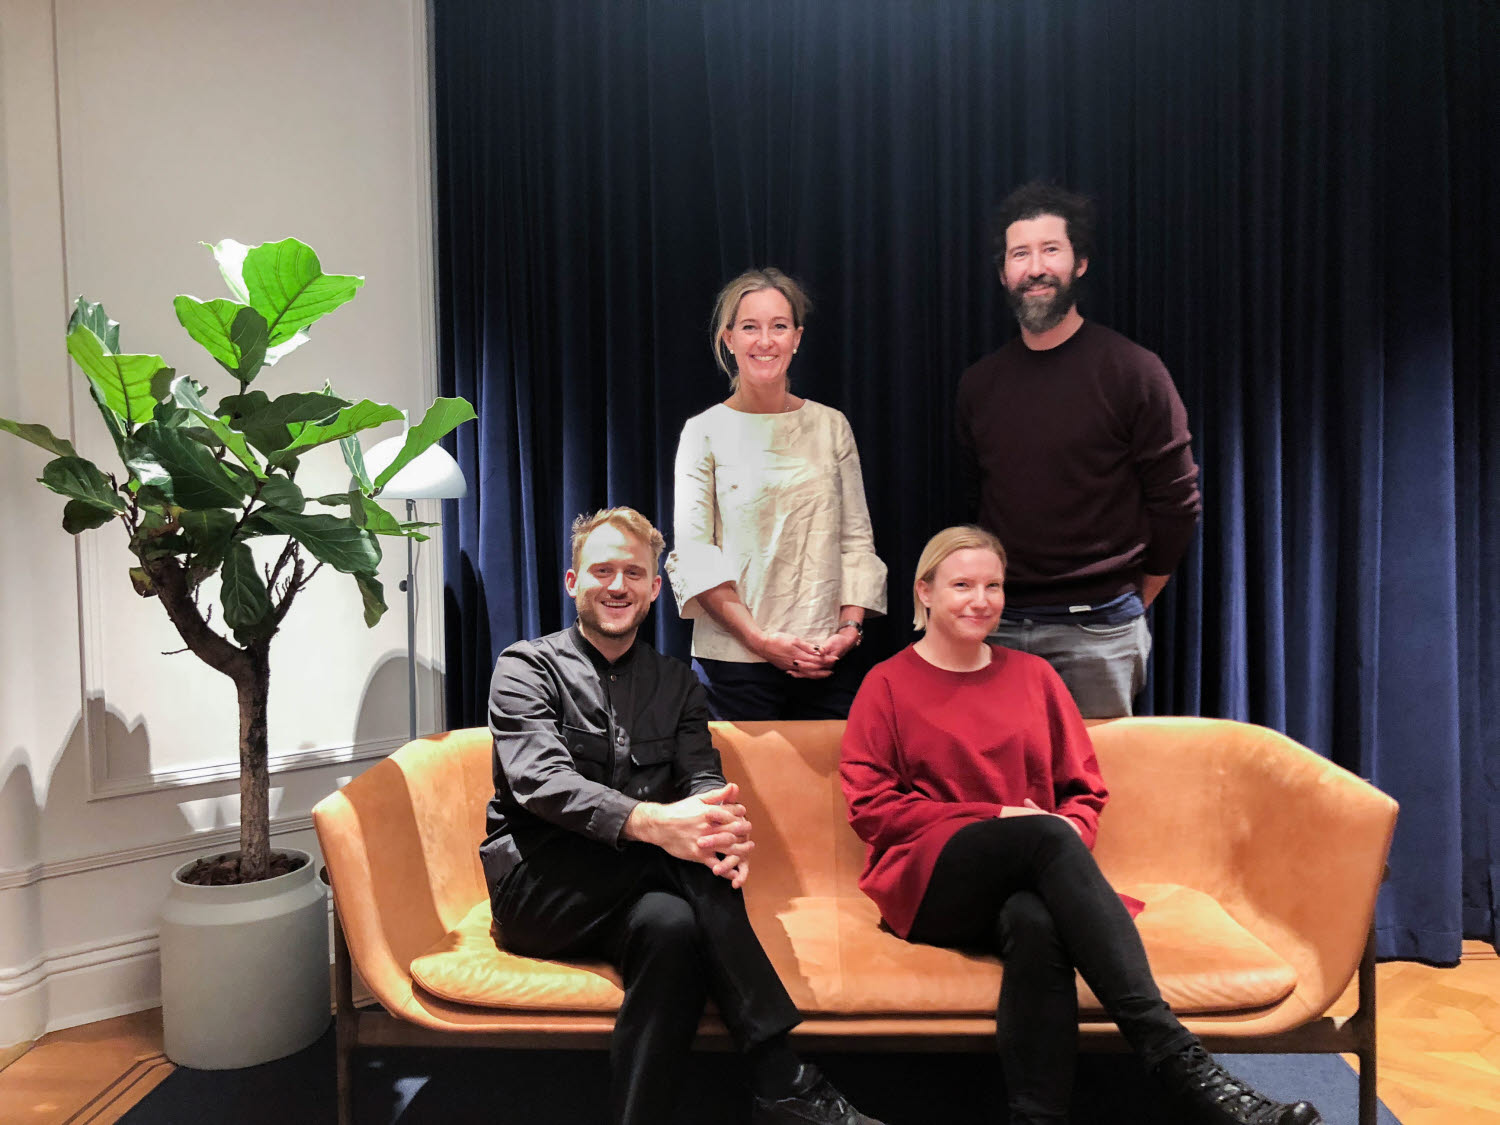 From left to right: Dan Herlin, Client Director, Identity Works, Stina Sandell, Senior Vice President, Sustainability and Communications, Holmen, Sandra Fors, Brand Strategist, Identity Works,Nikolaj Kledzik, Design Director, Identity Works.